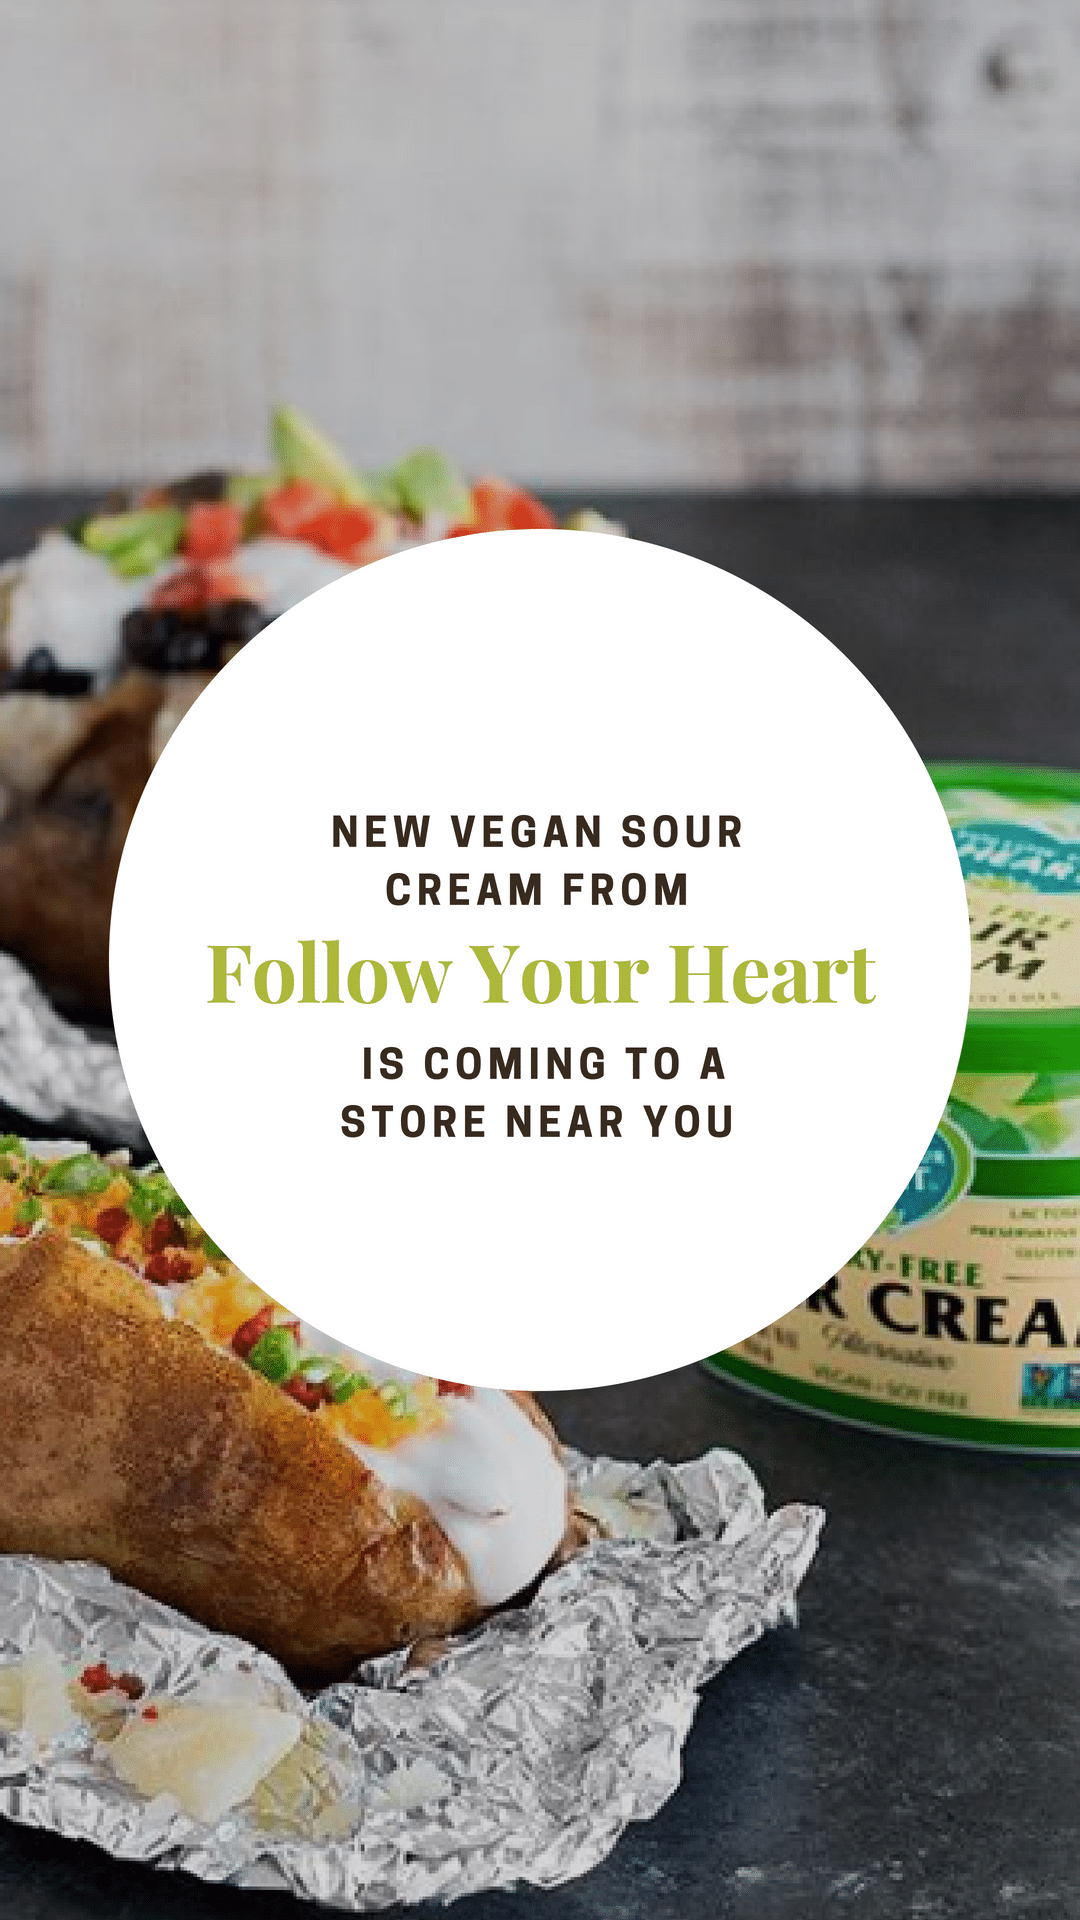 New Vegan Sour Cream From Follow Your Heart Is Coming to a Store Near You